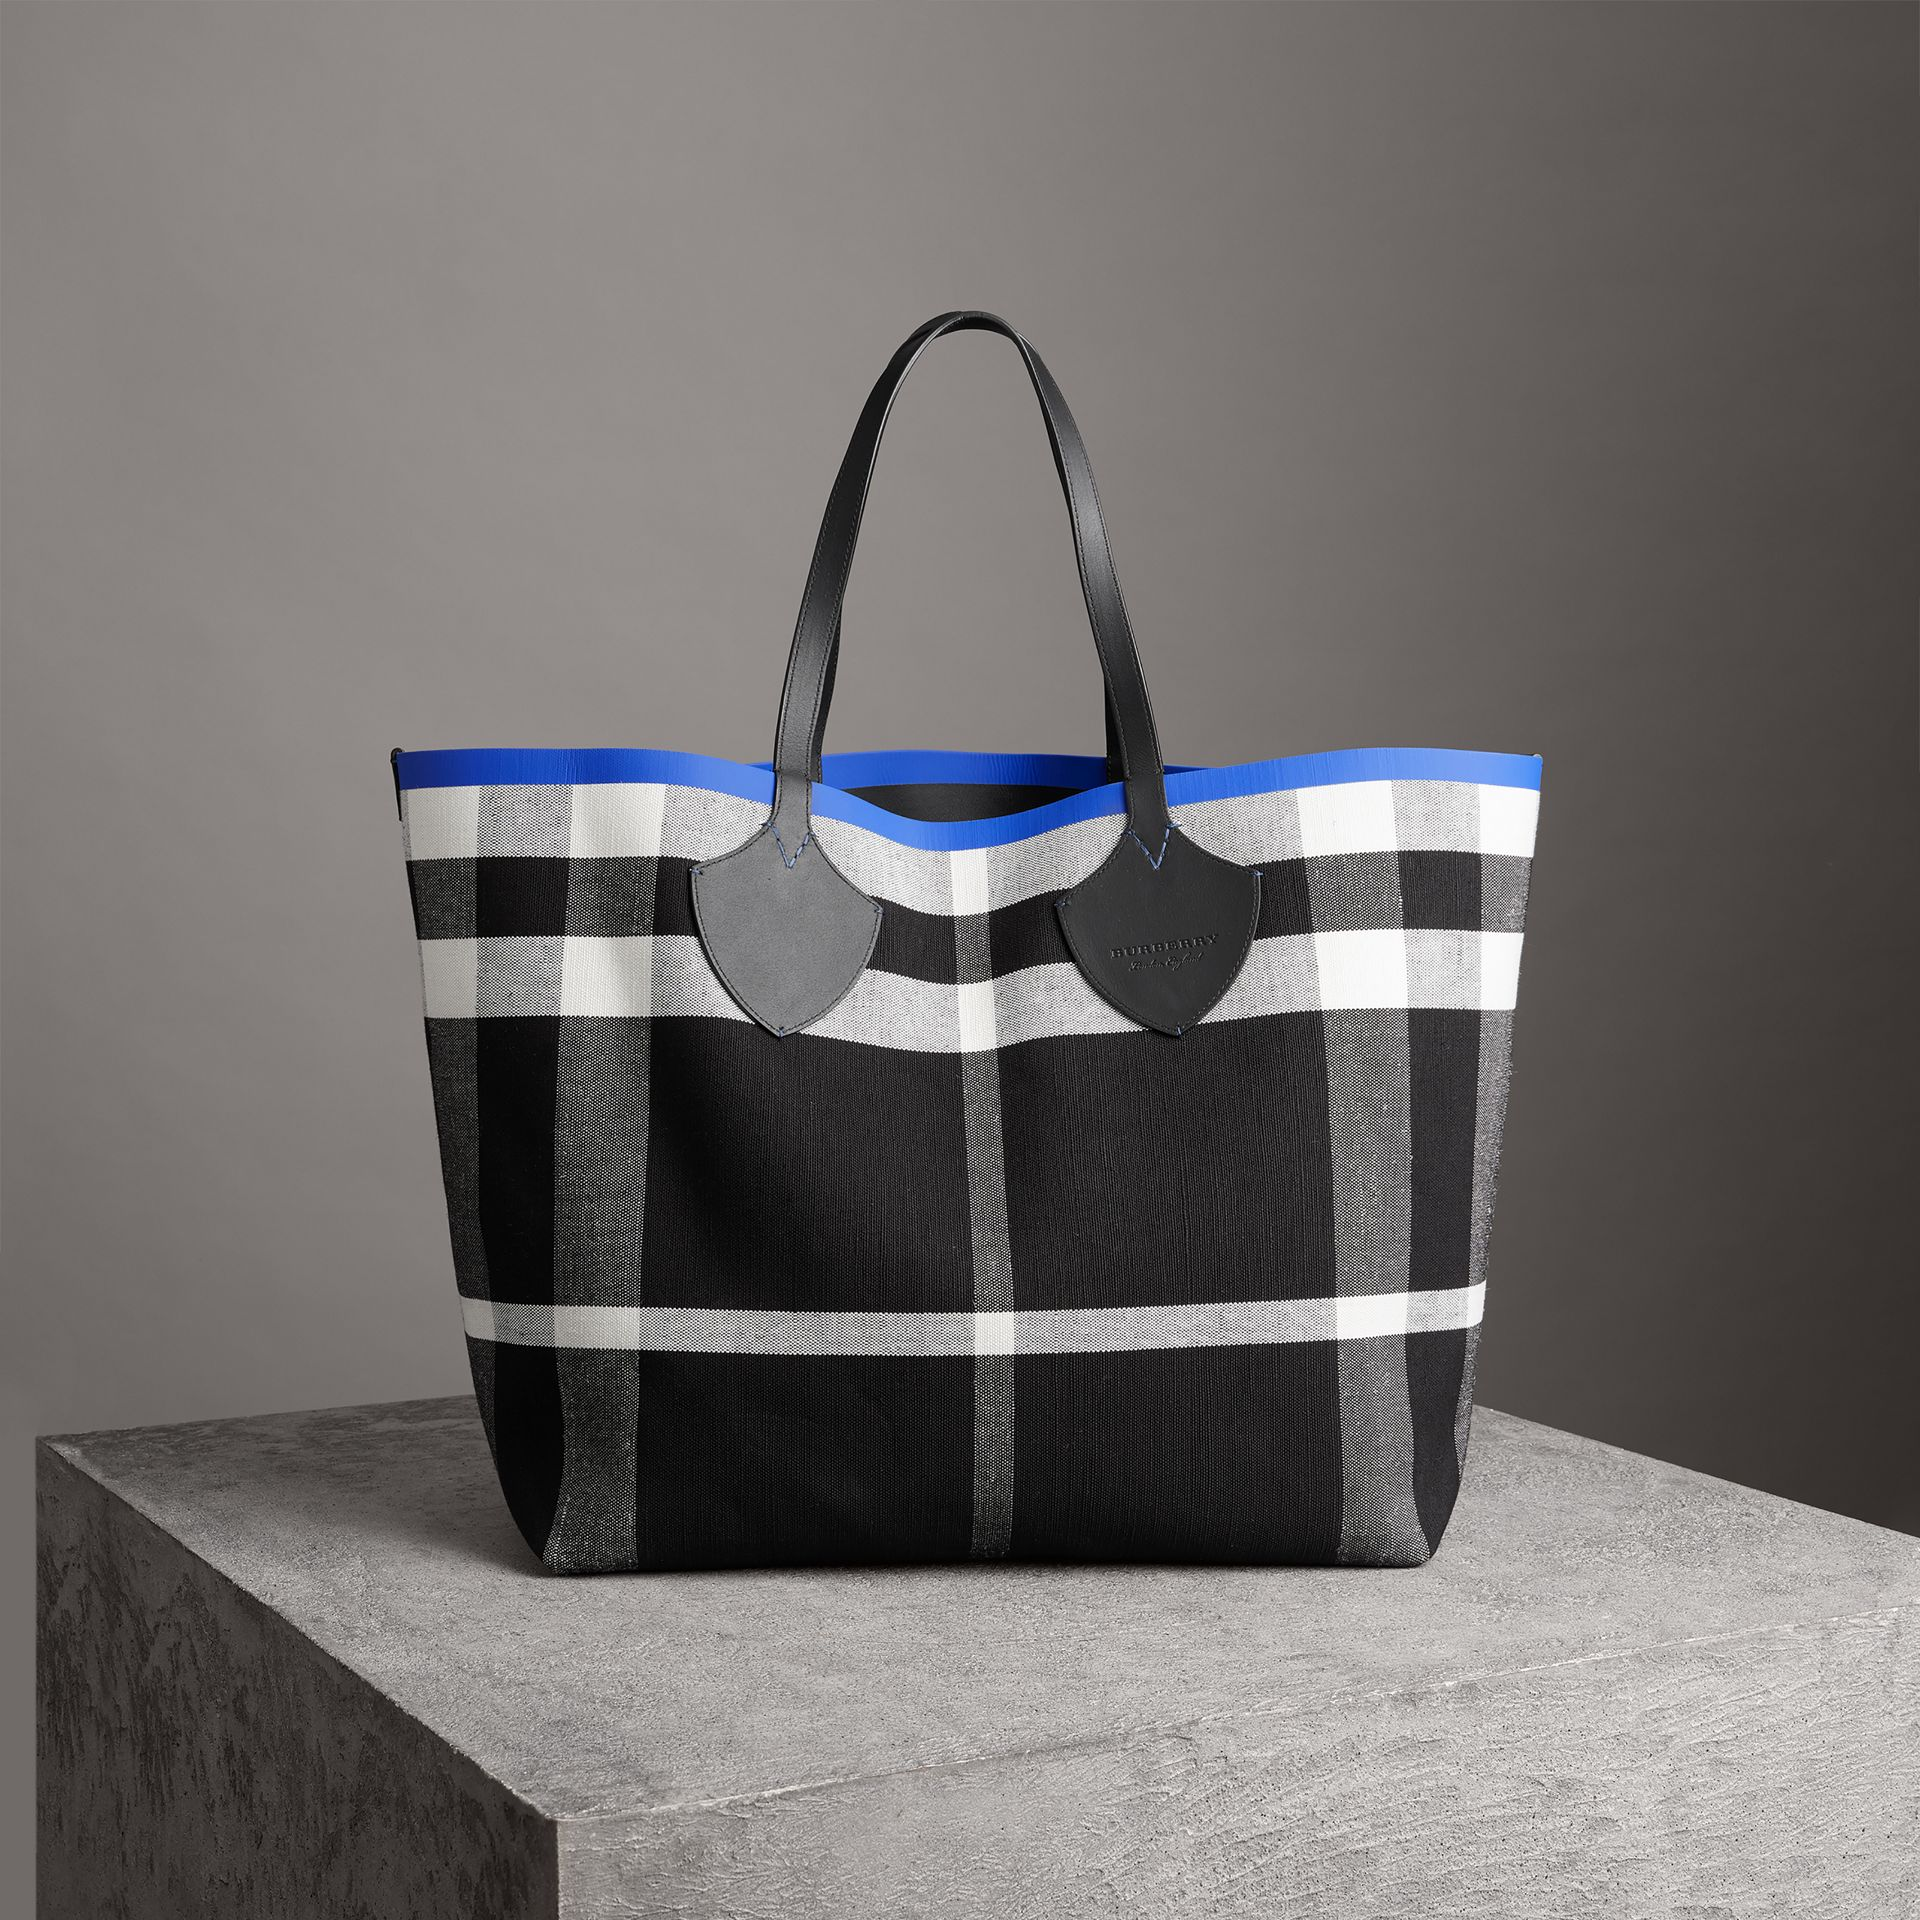 Sac tote The Giant réversible en cuir et coton Canvas check (Myrtille/noir) | Burberry - photo de la galerie 0